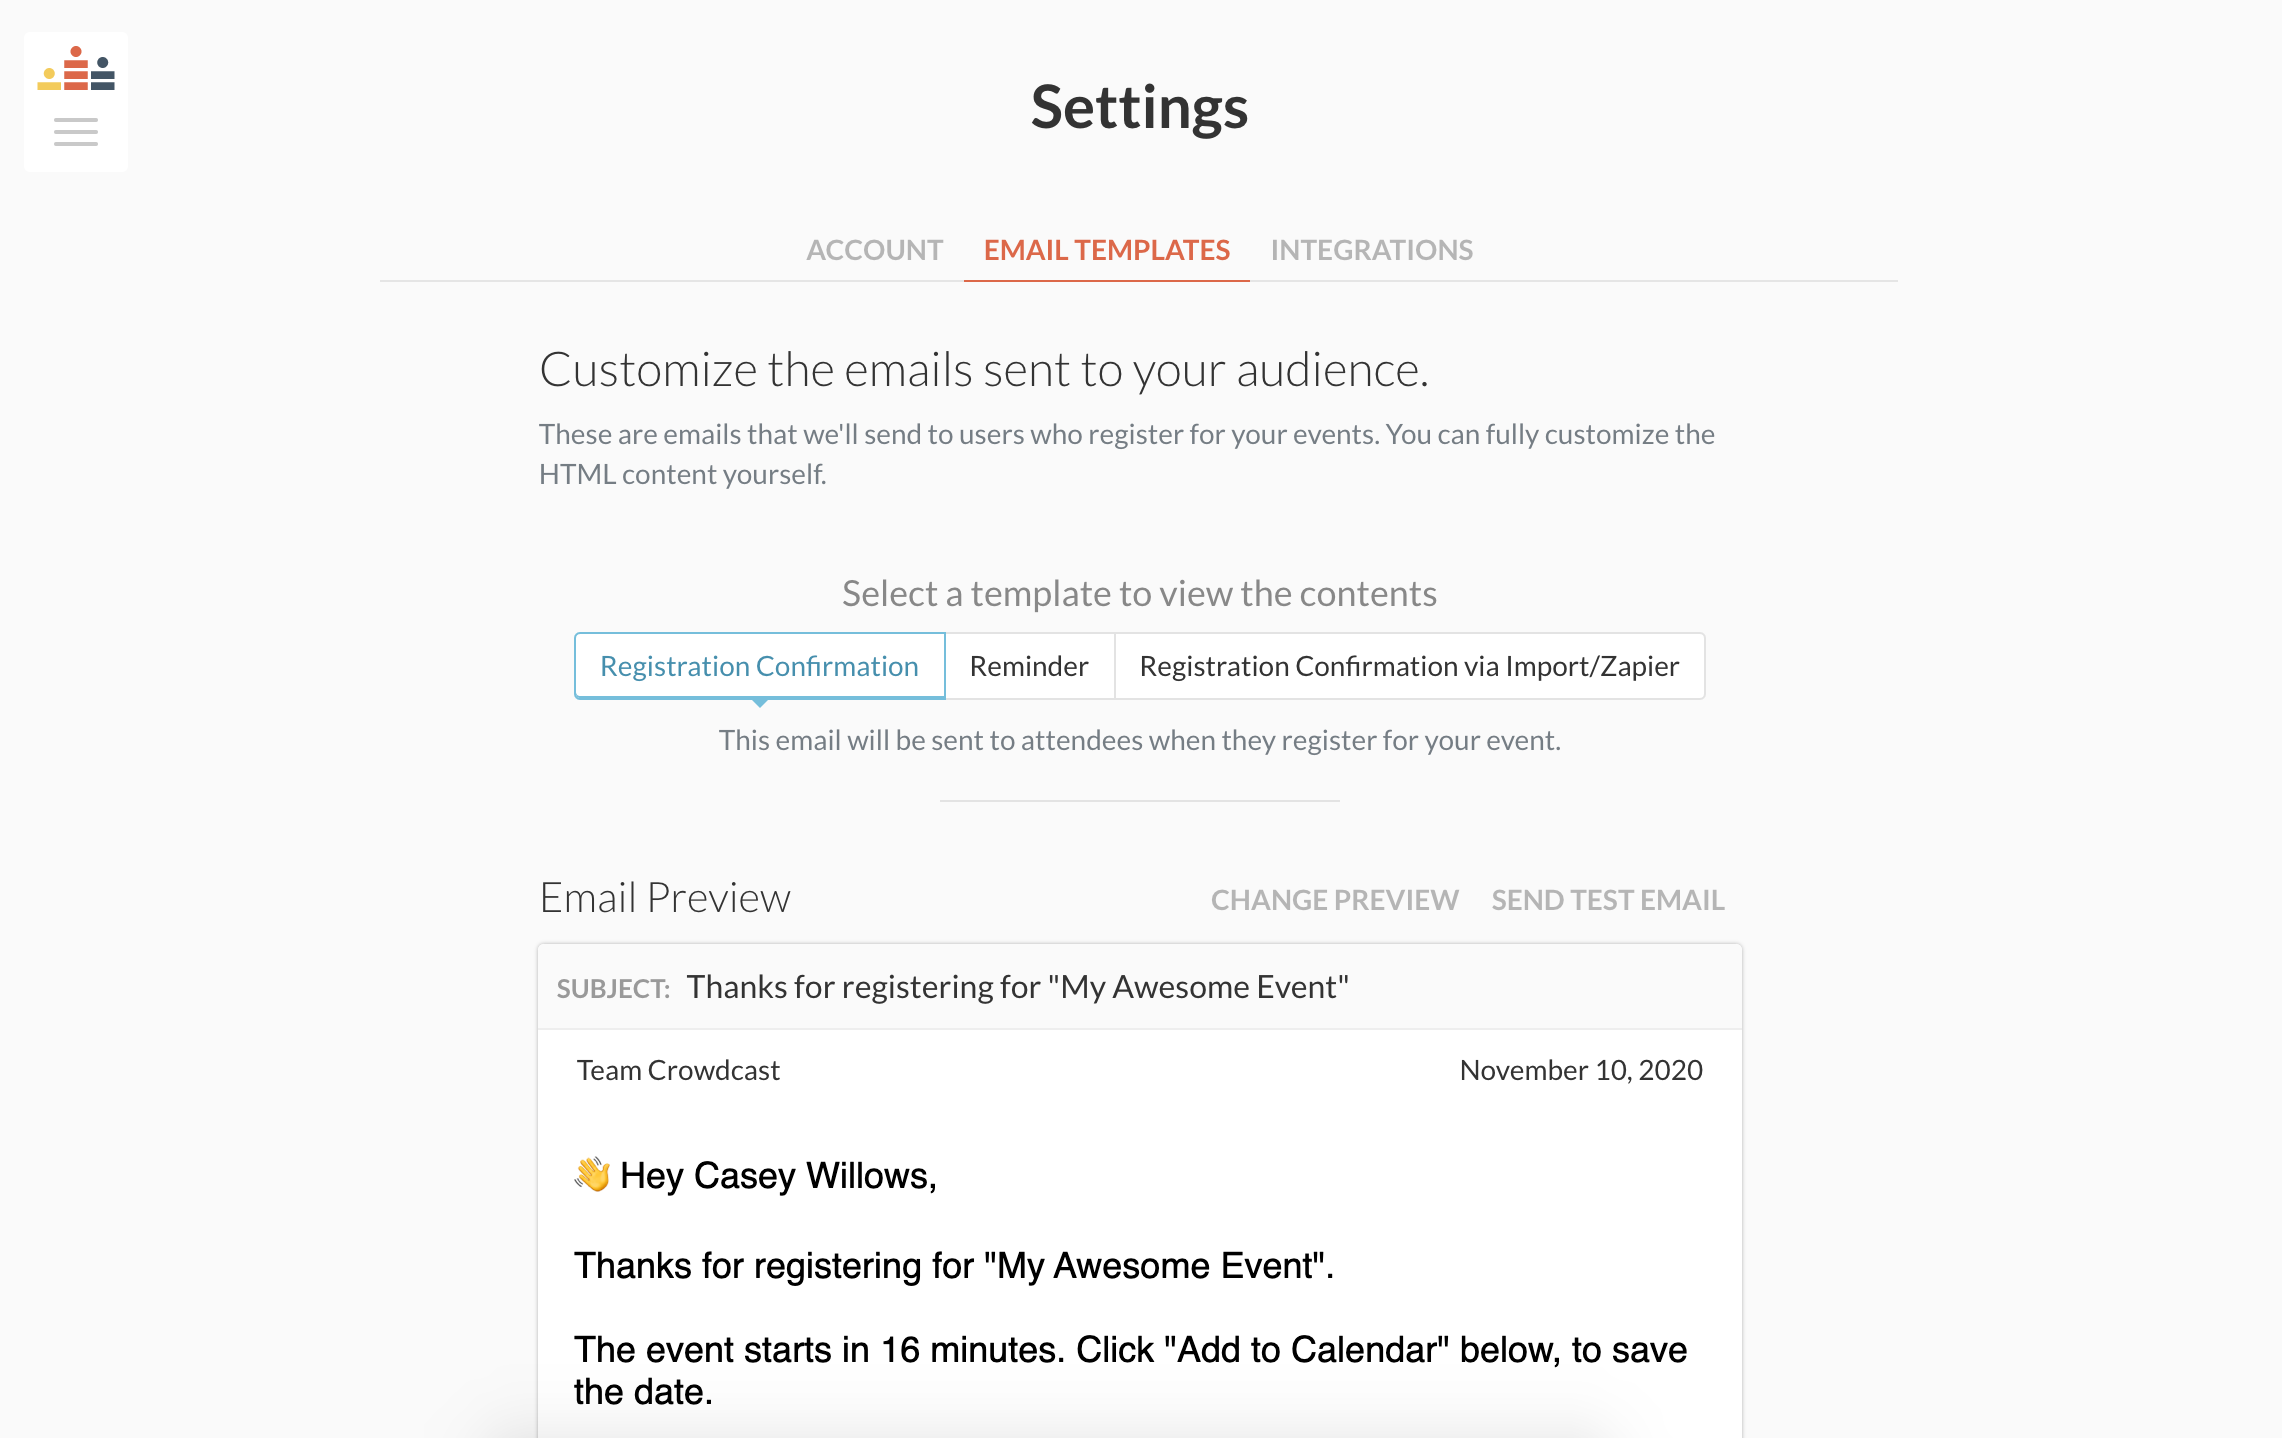 email templates found from settings